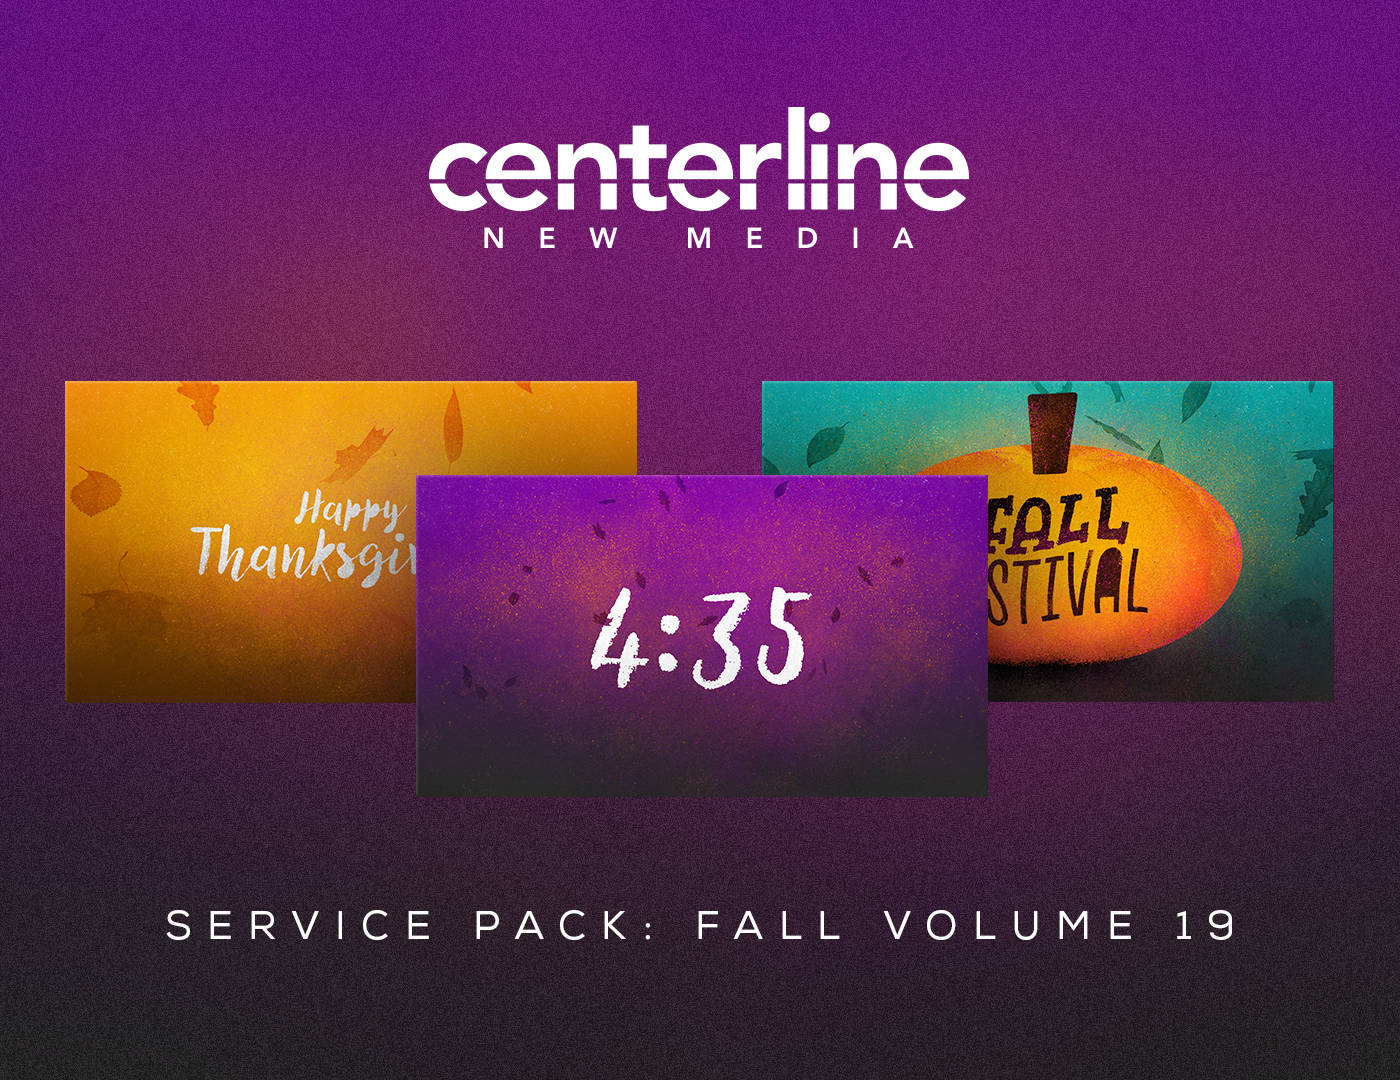 SERVICE PACK: FALL VOL. 19